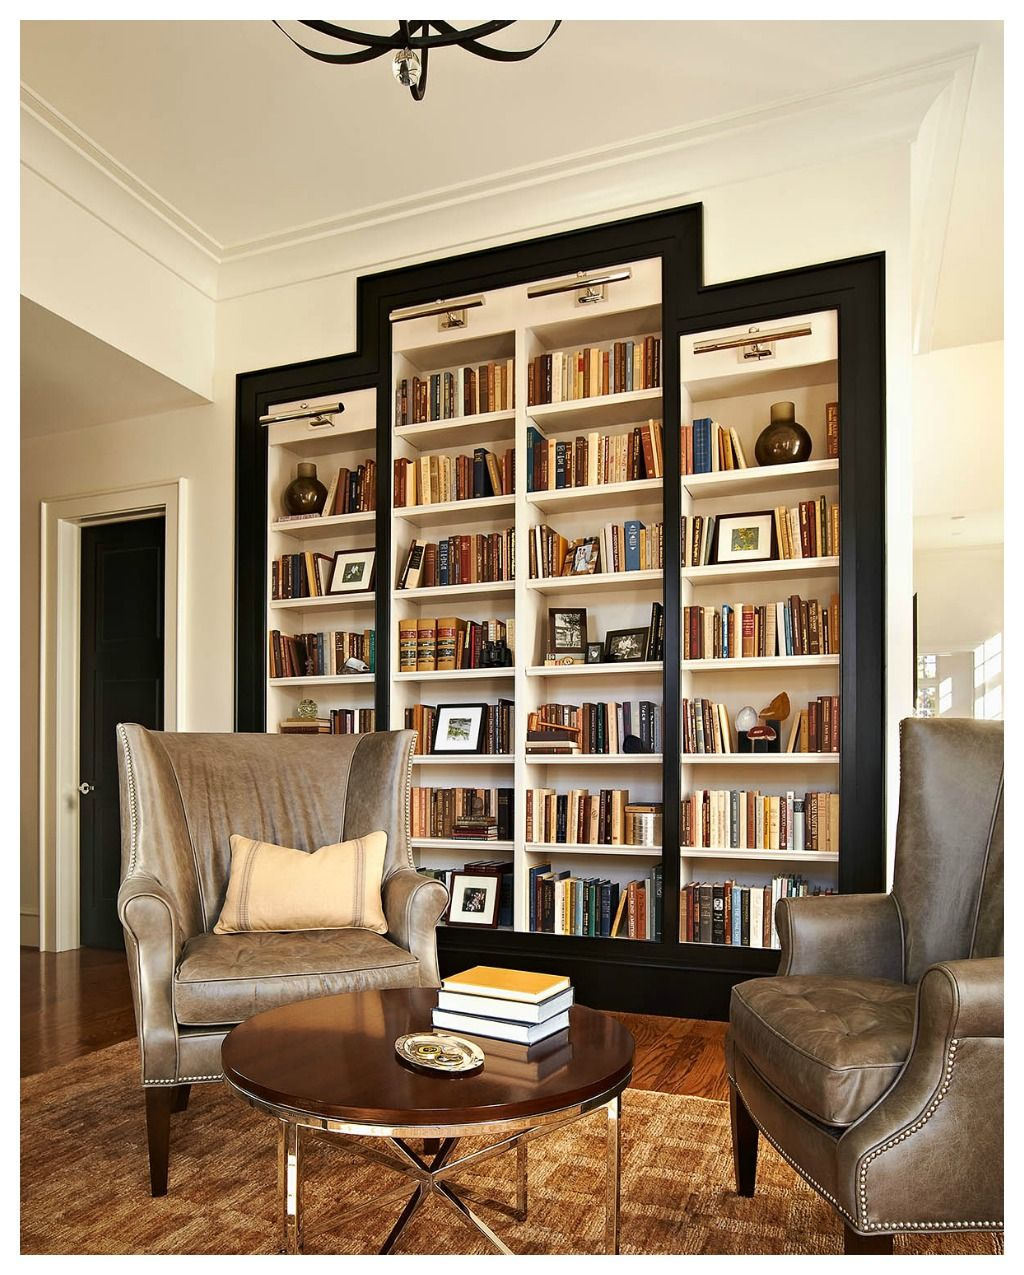 Bookshelves Study At Ncstate Chancellors House Design Lines Ltd Raleigh Interior Bookshelf DesignBookshelf IdeasBook